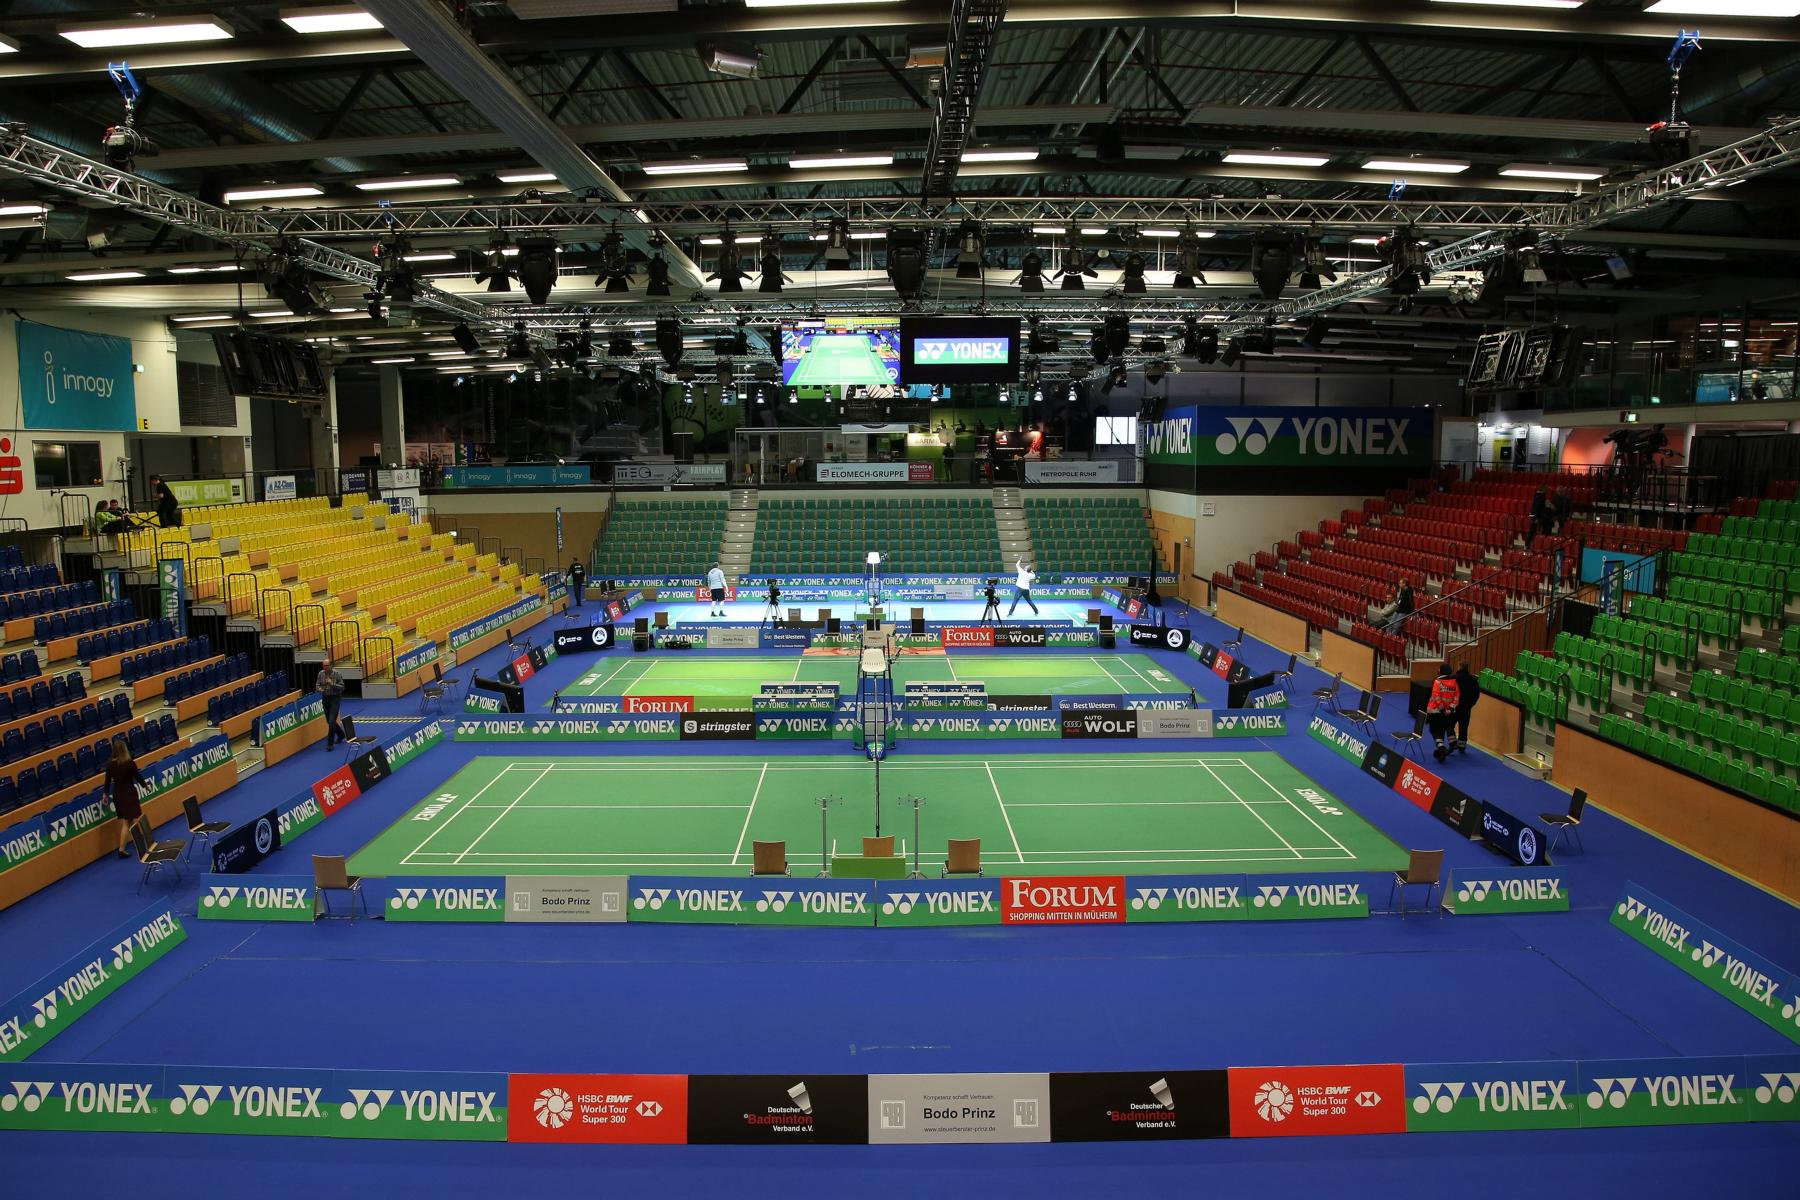 Badminton-Nationalmannschaft: EM-Qualifikation in DESSAU